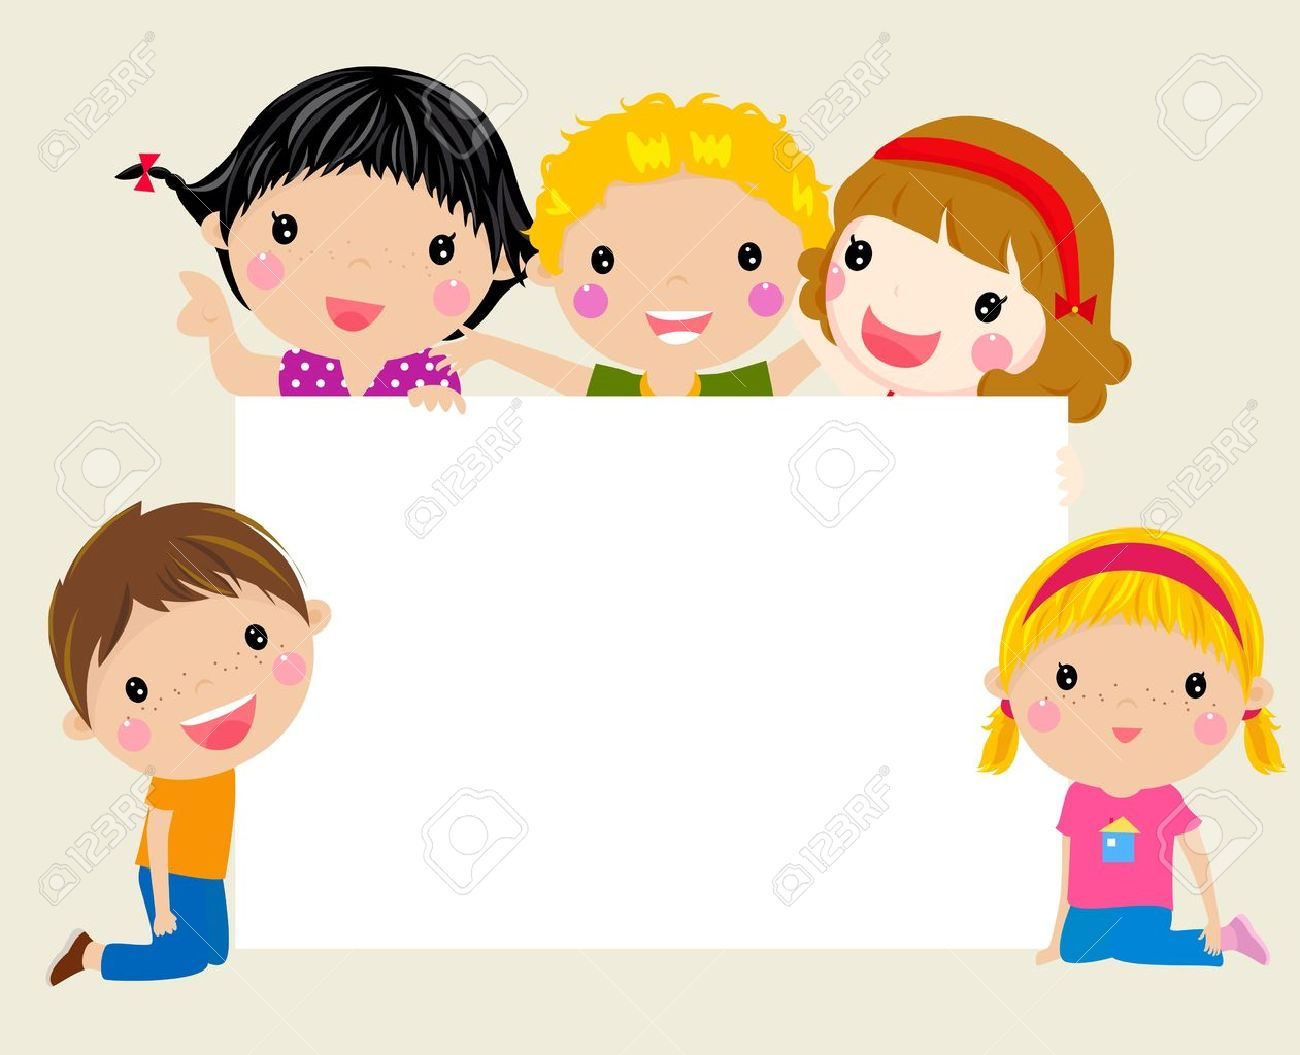 cute cartoon kids frame royalty free cliparts vectors and stock